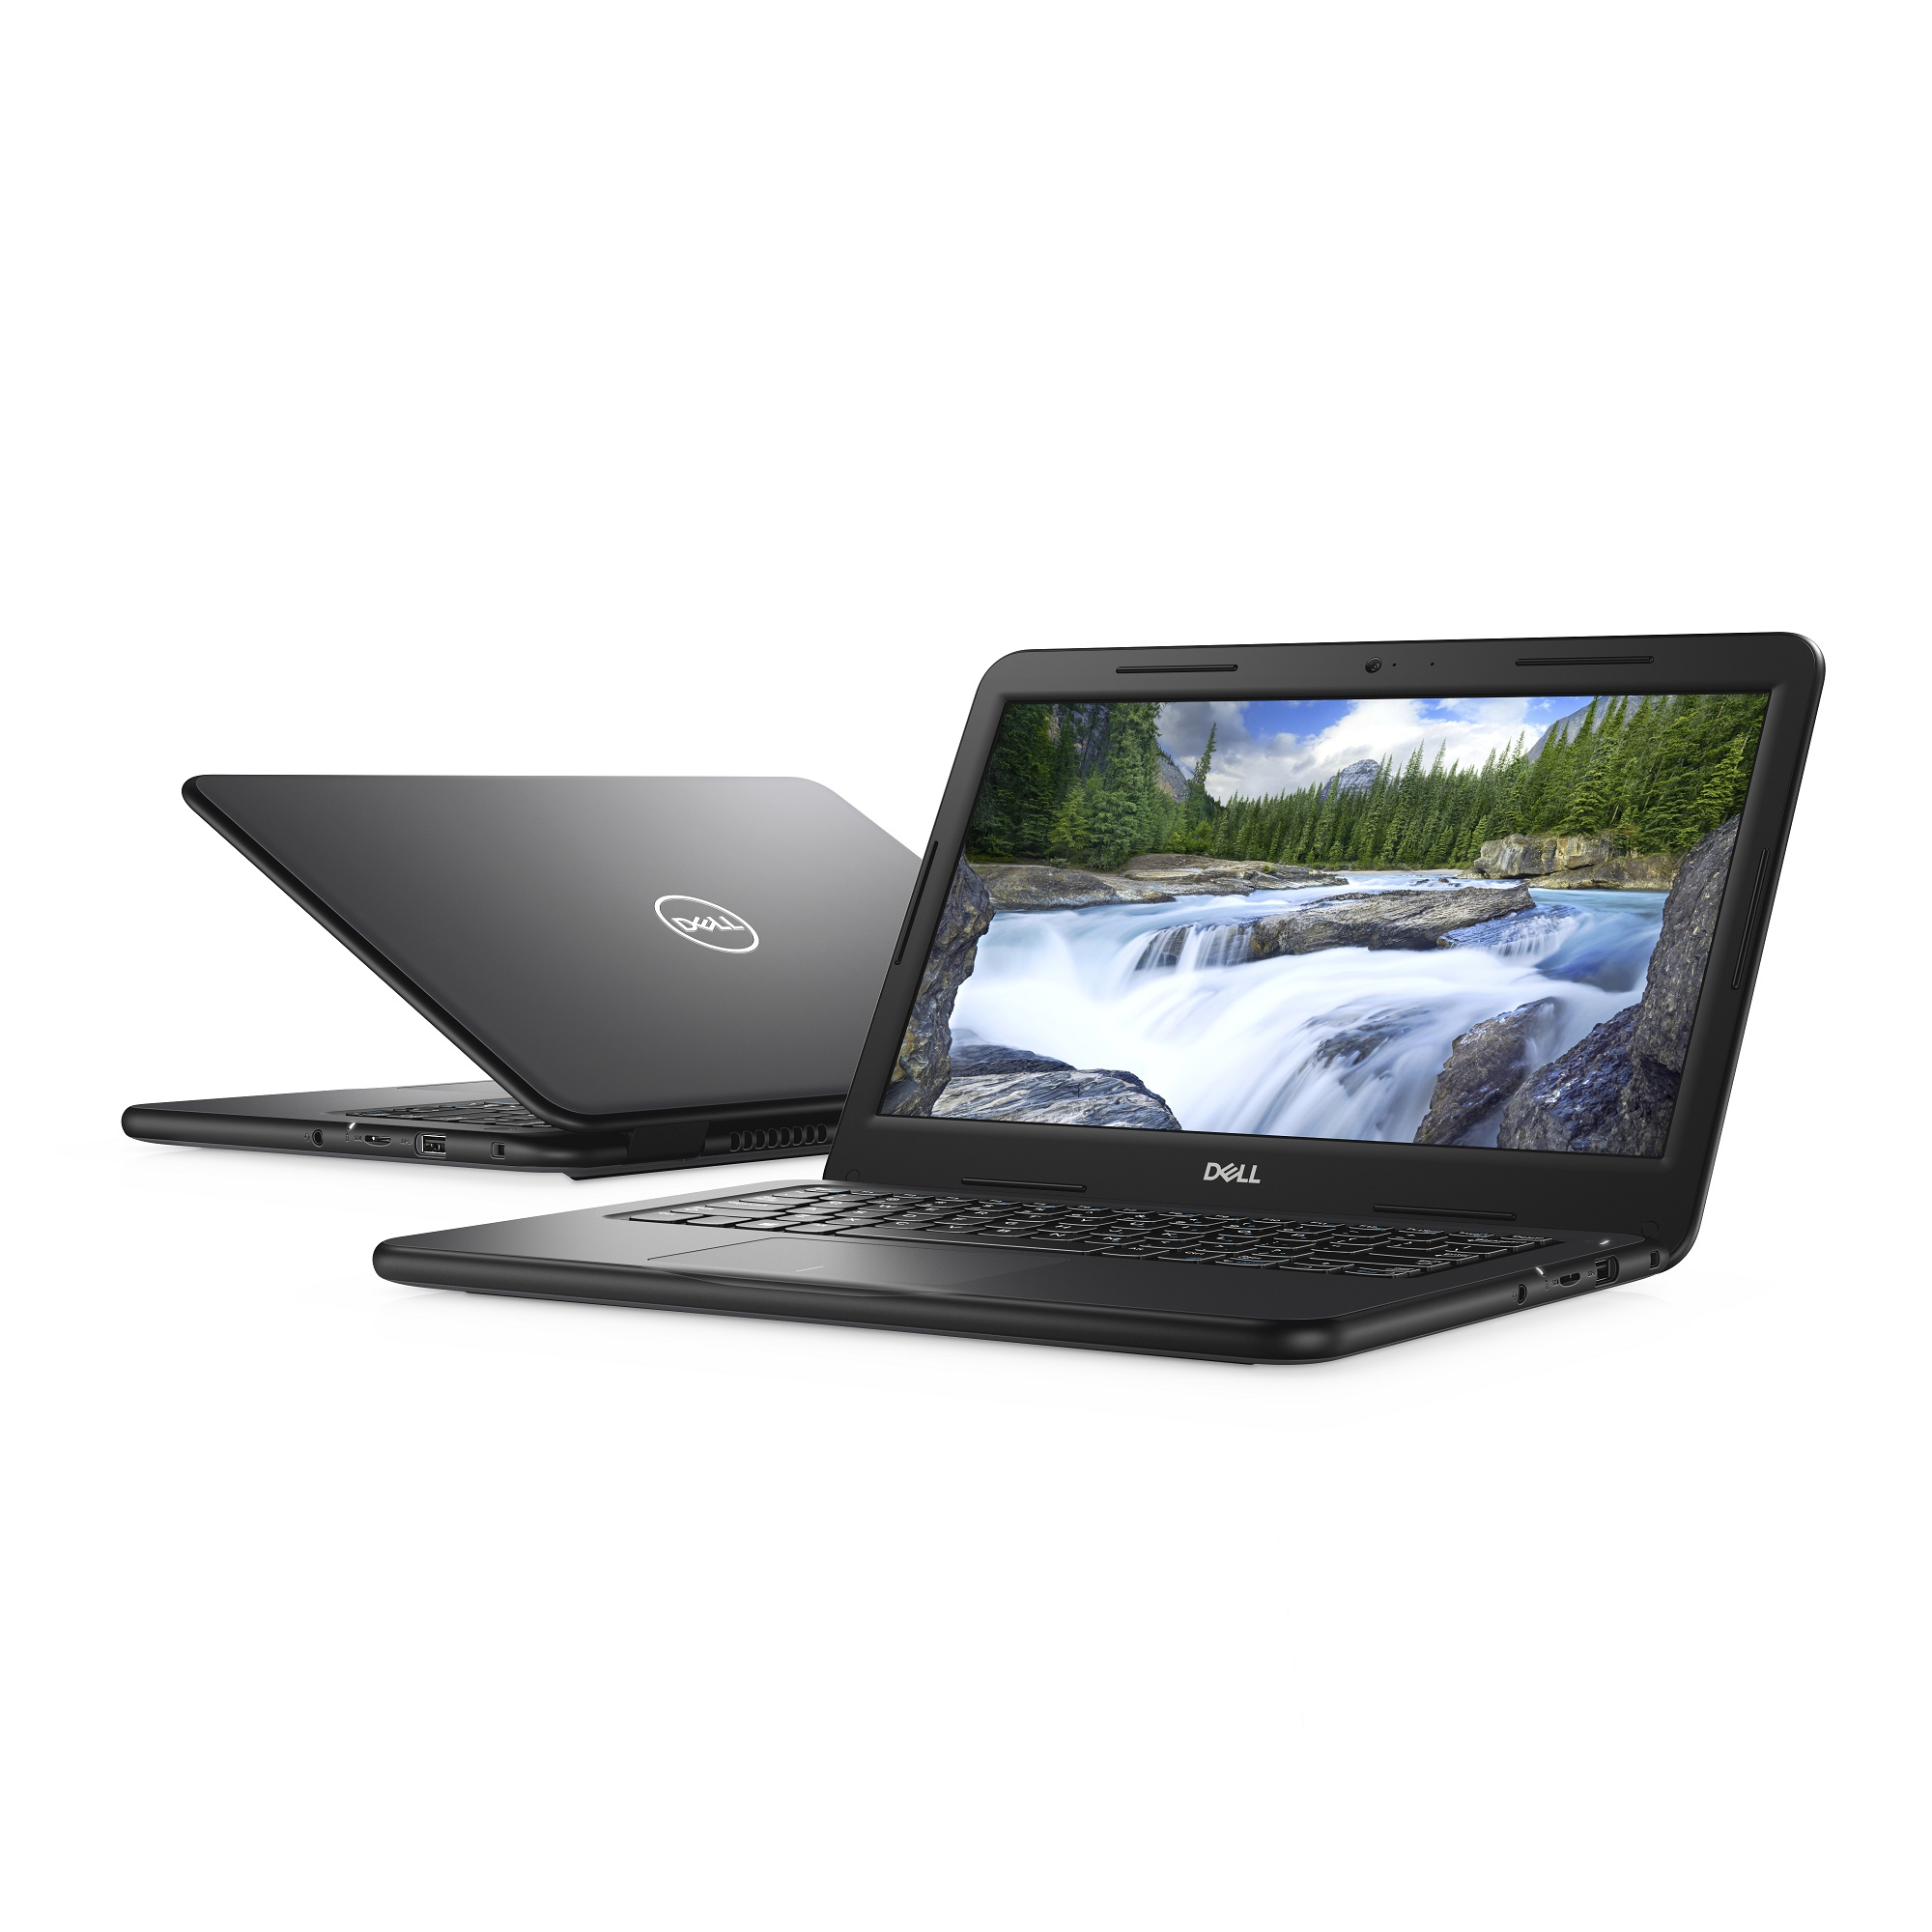 Laptop DELL Latitude 3310 2in1 13.3 FHD i3-8145U 8GB 256GB SSD BK W10P 3YBWOS